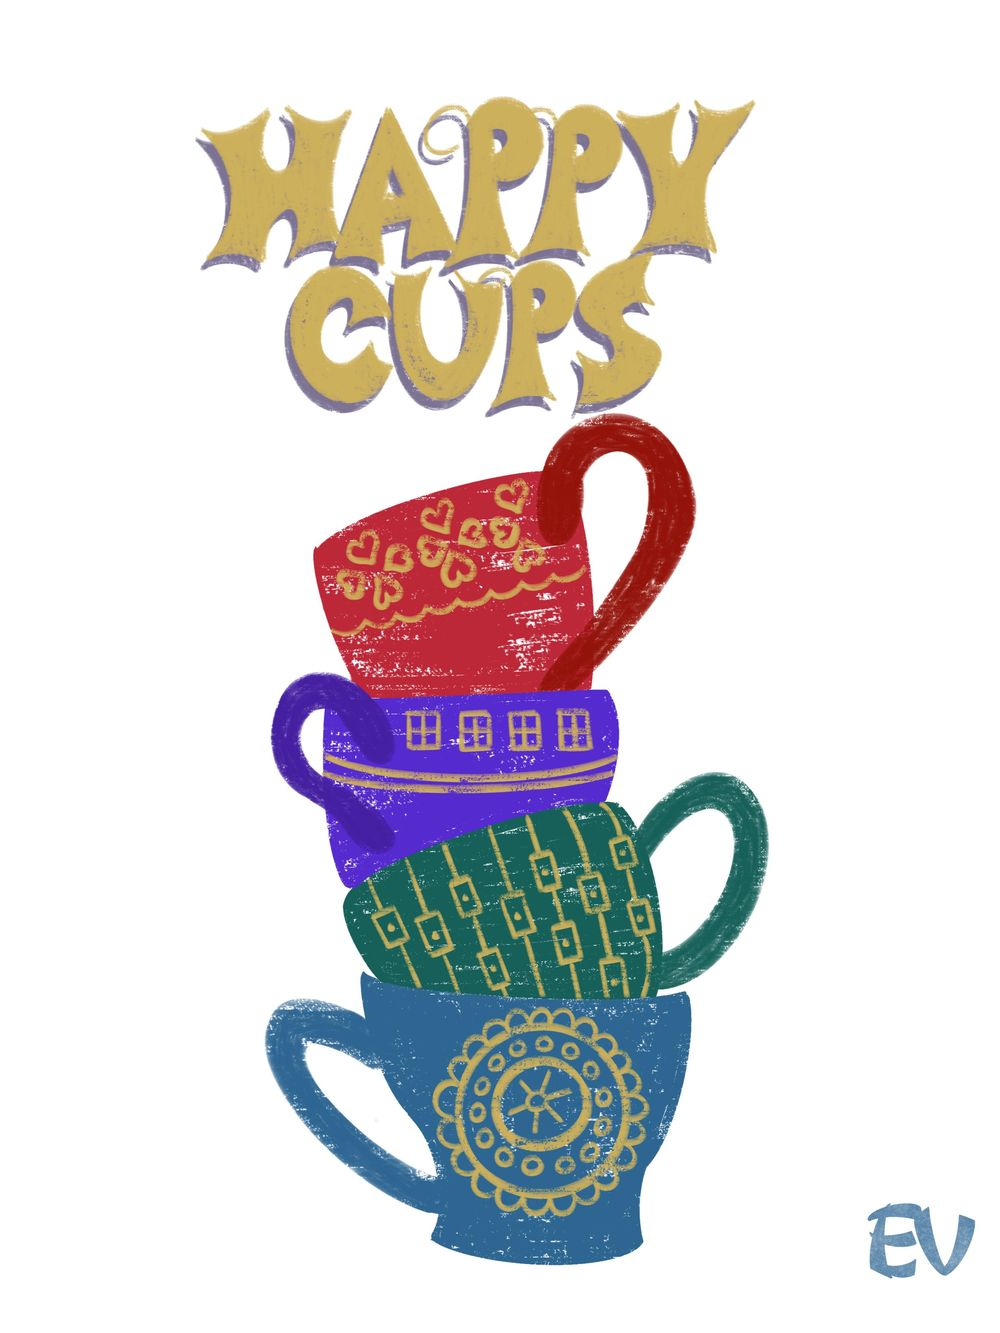 Happy Cups - image 1 - student project